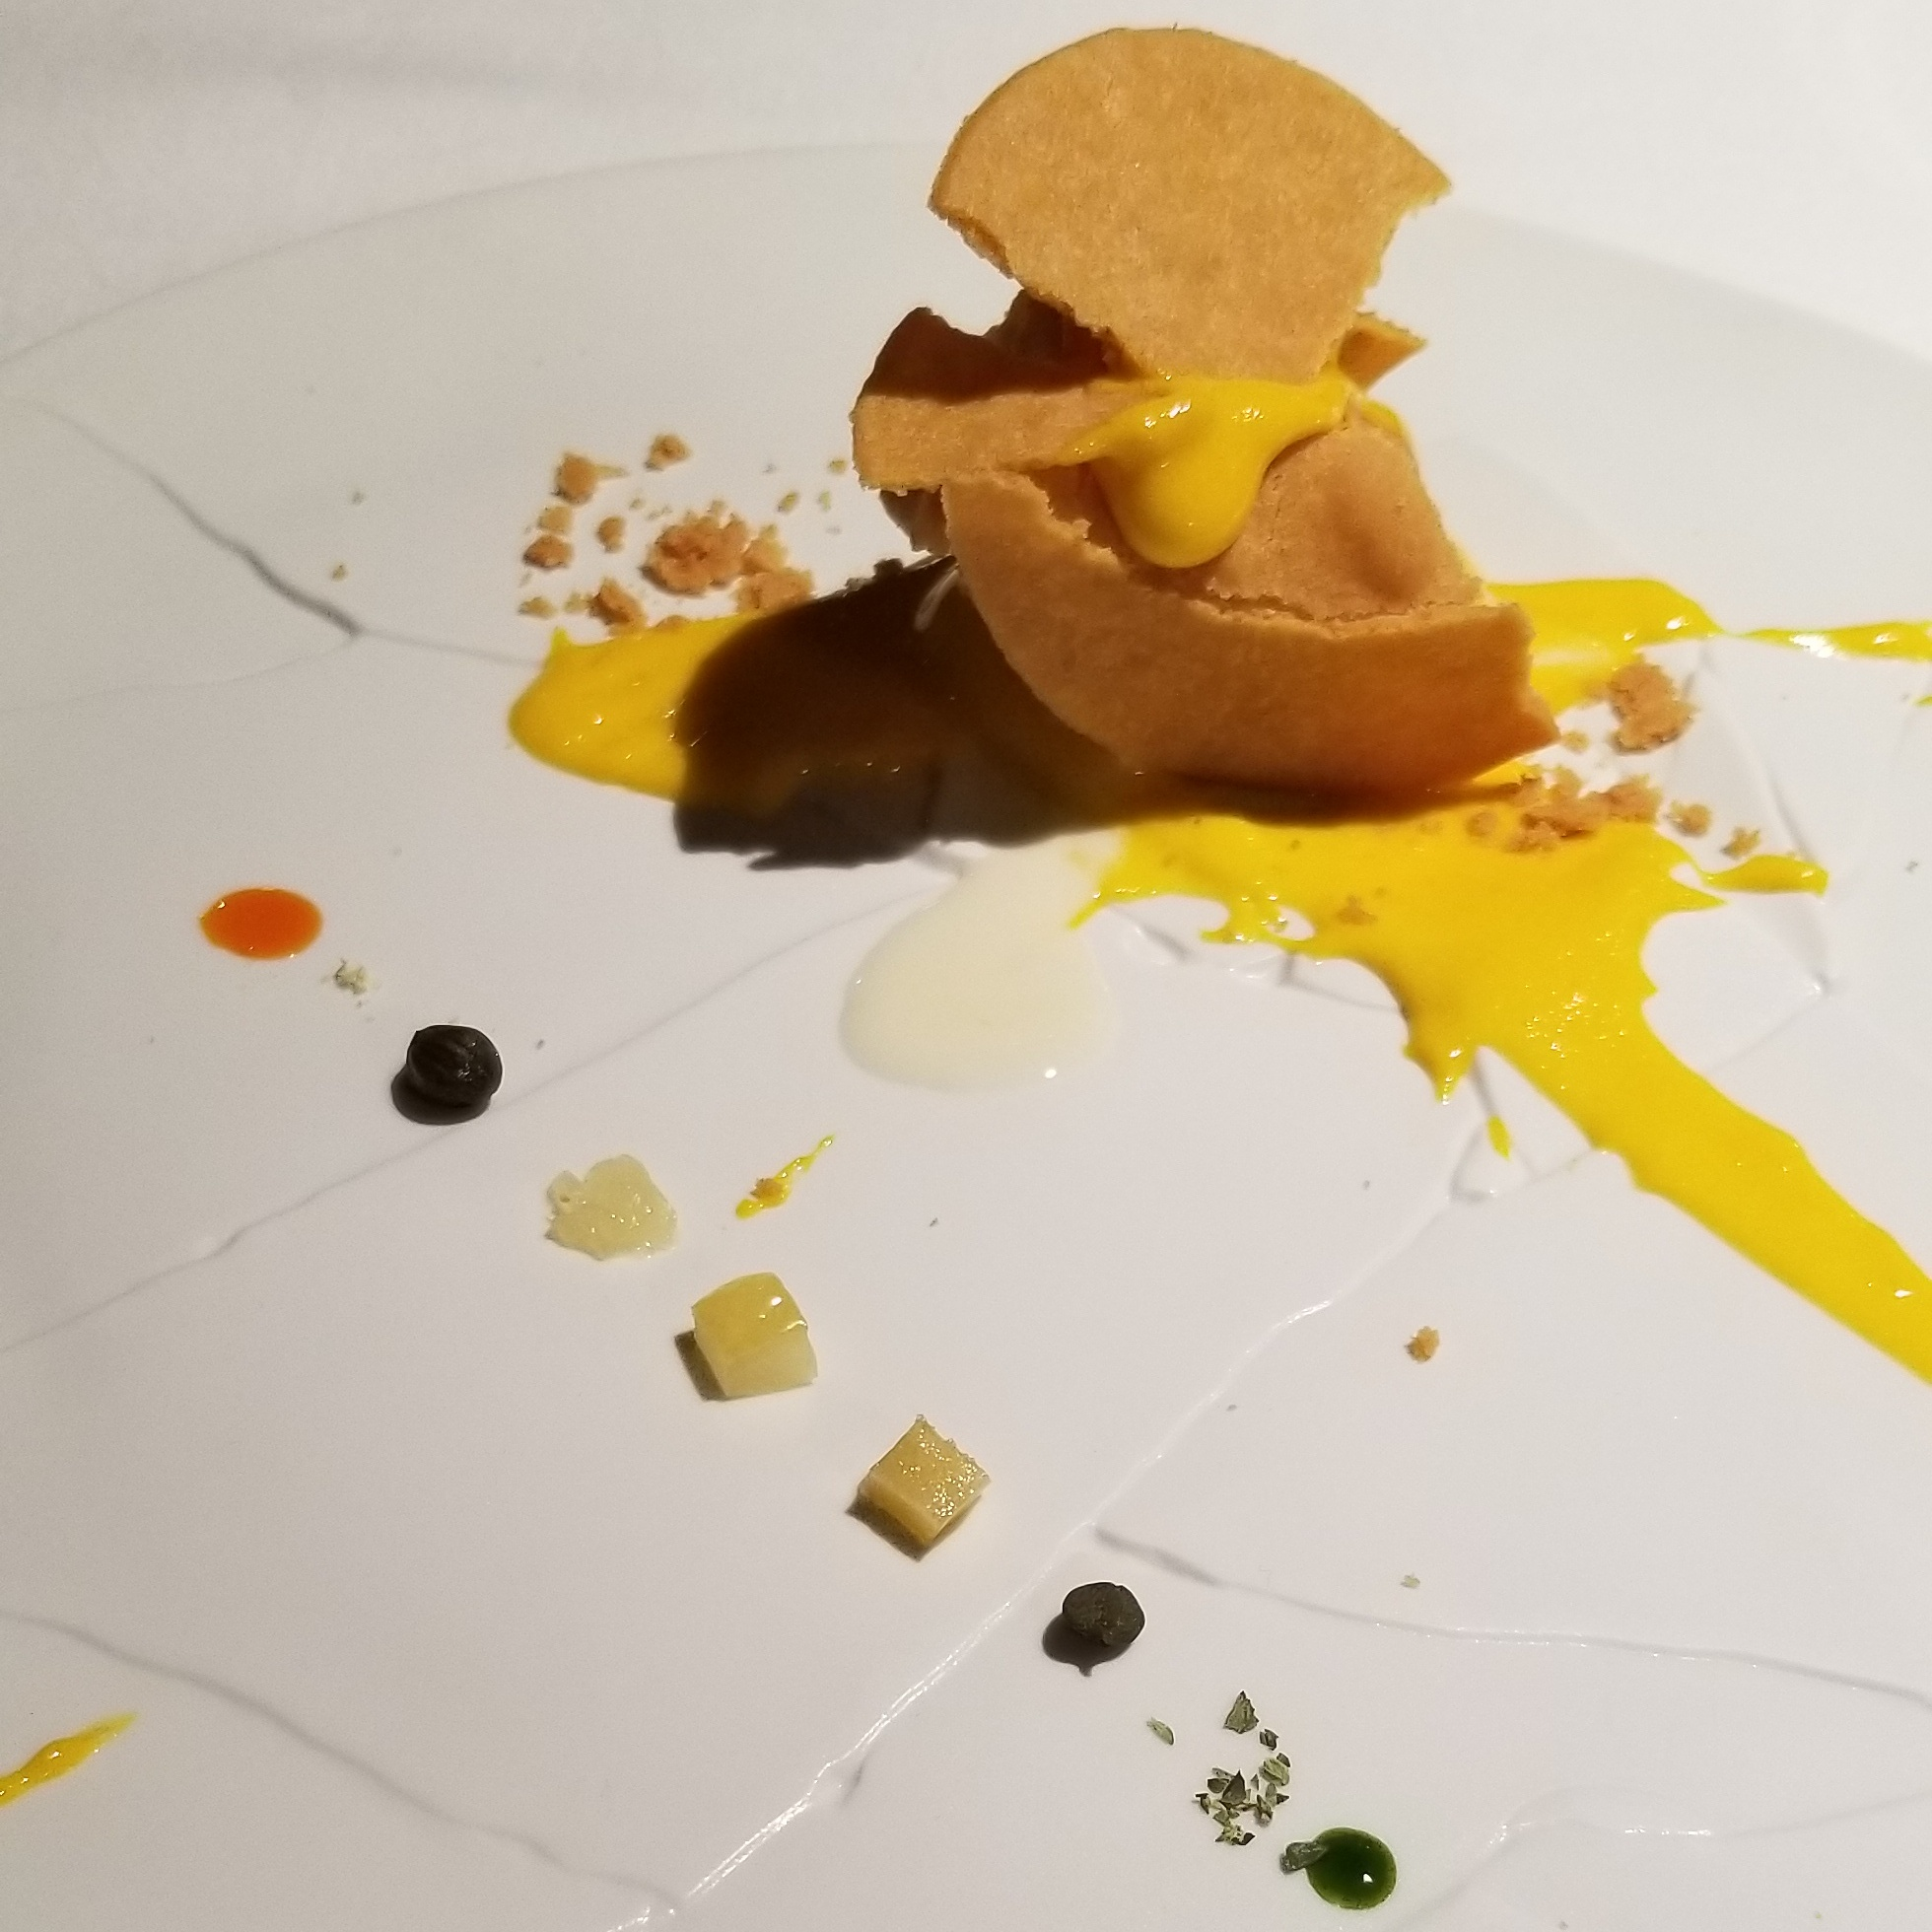 """Oops! I dropped the lemon tart""    Zabaglione, lemongrass gelato, and a cracked tart crust are accentuated by mint sauce, candied lemon, candied bergamot, capers, red chili, oregano, candied ginger, and lemon powder."